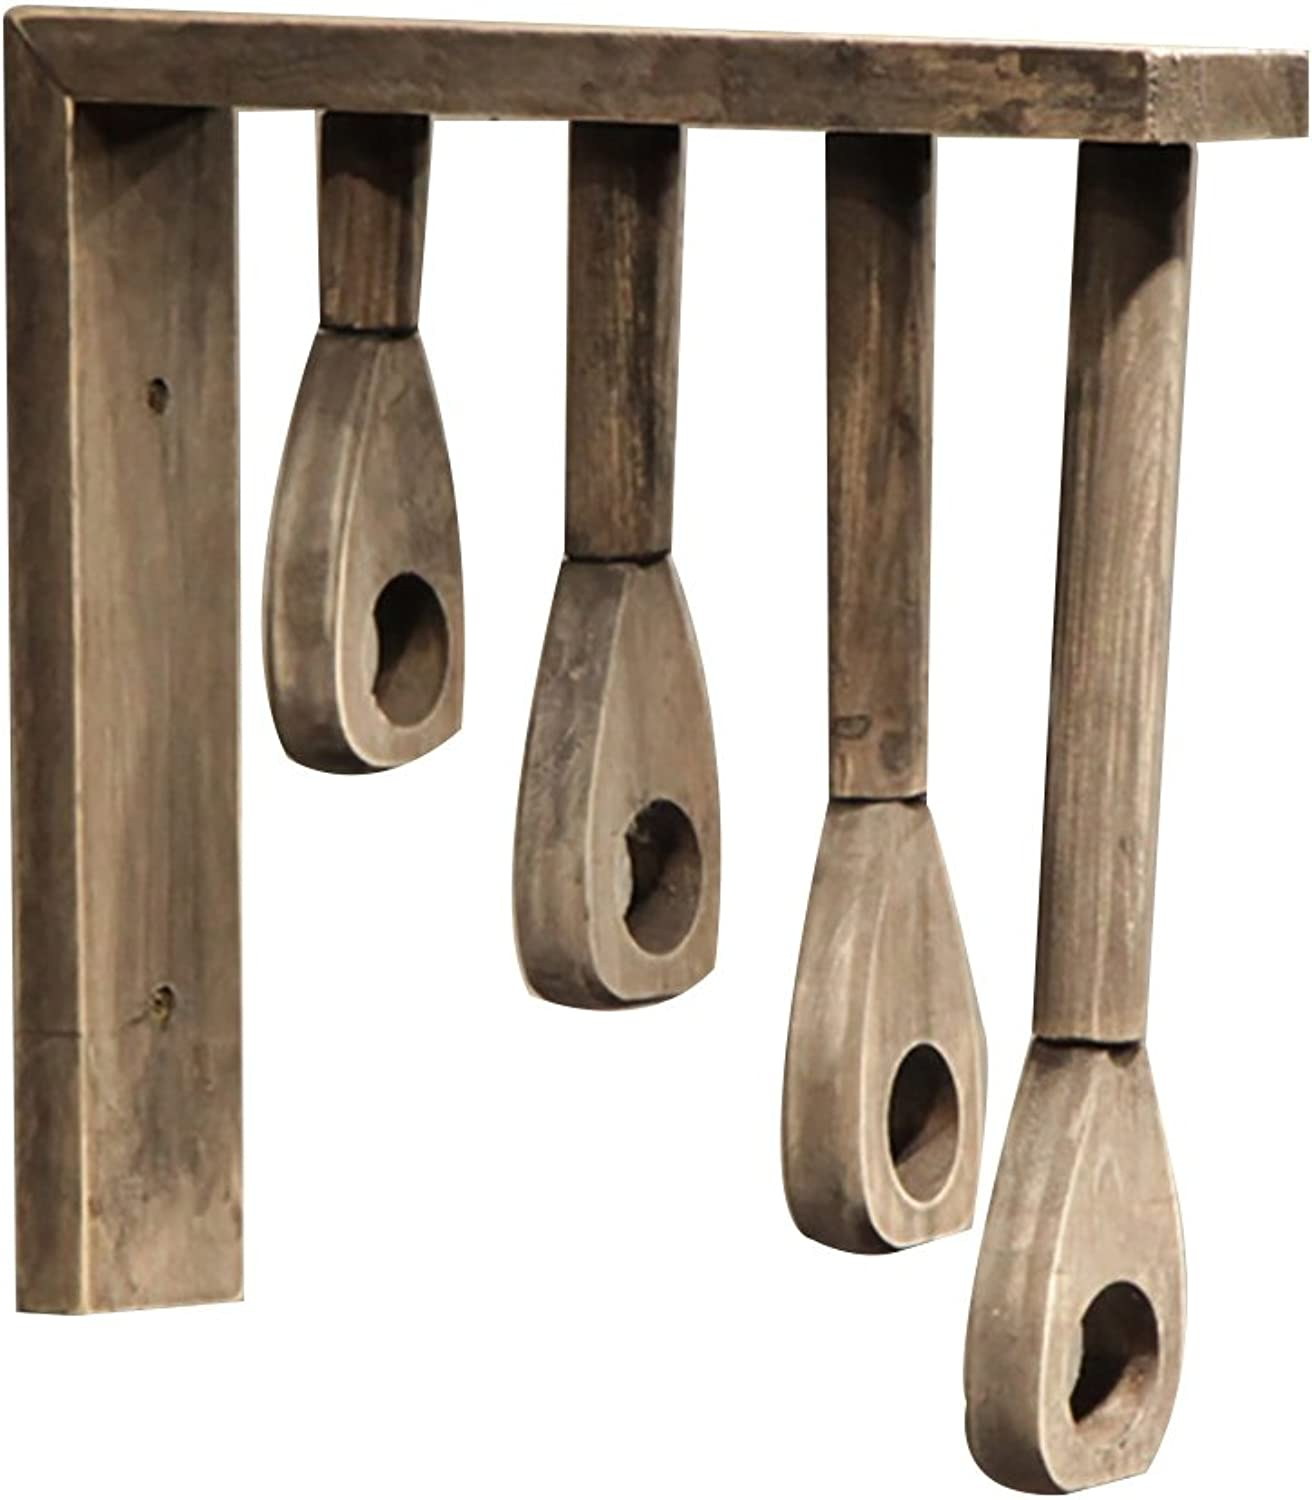 QIANGDA Coat Hat Rack Wall-Mounted Solid Wood with 4 Different Length Hanging rods, 30  30cm Optional